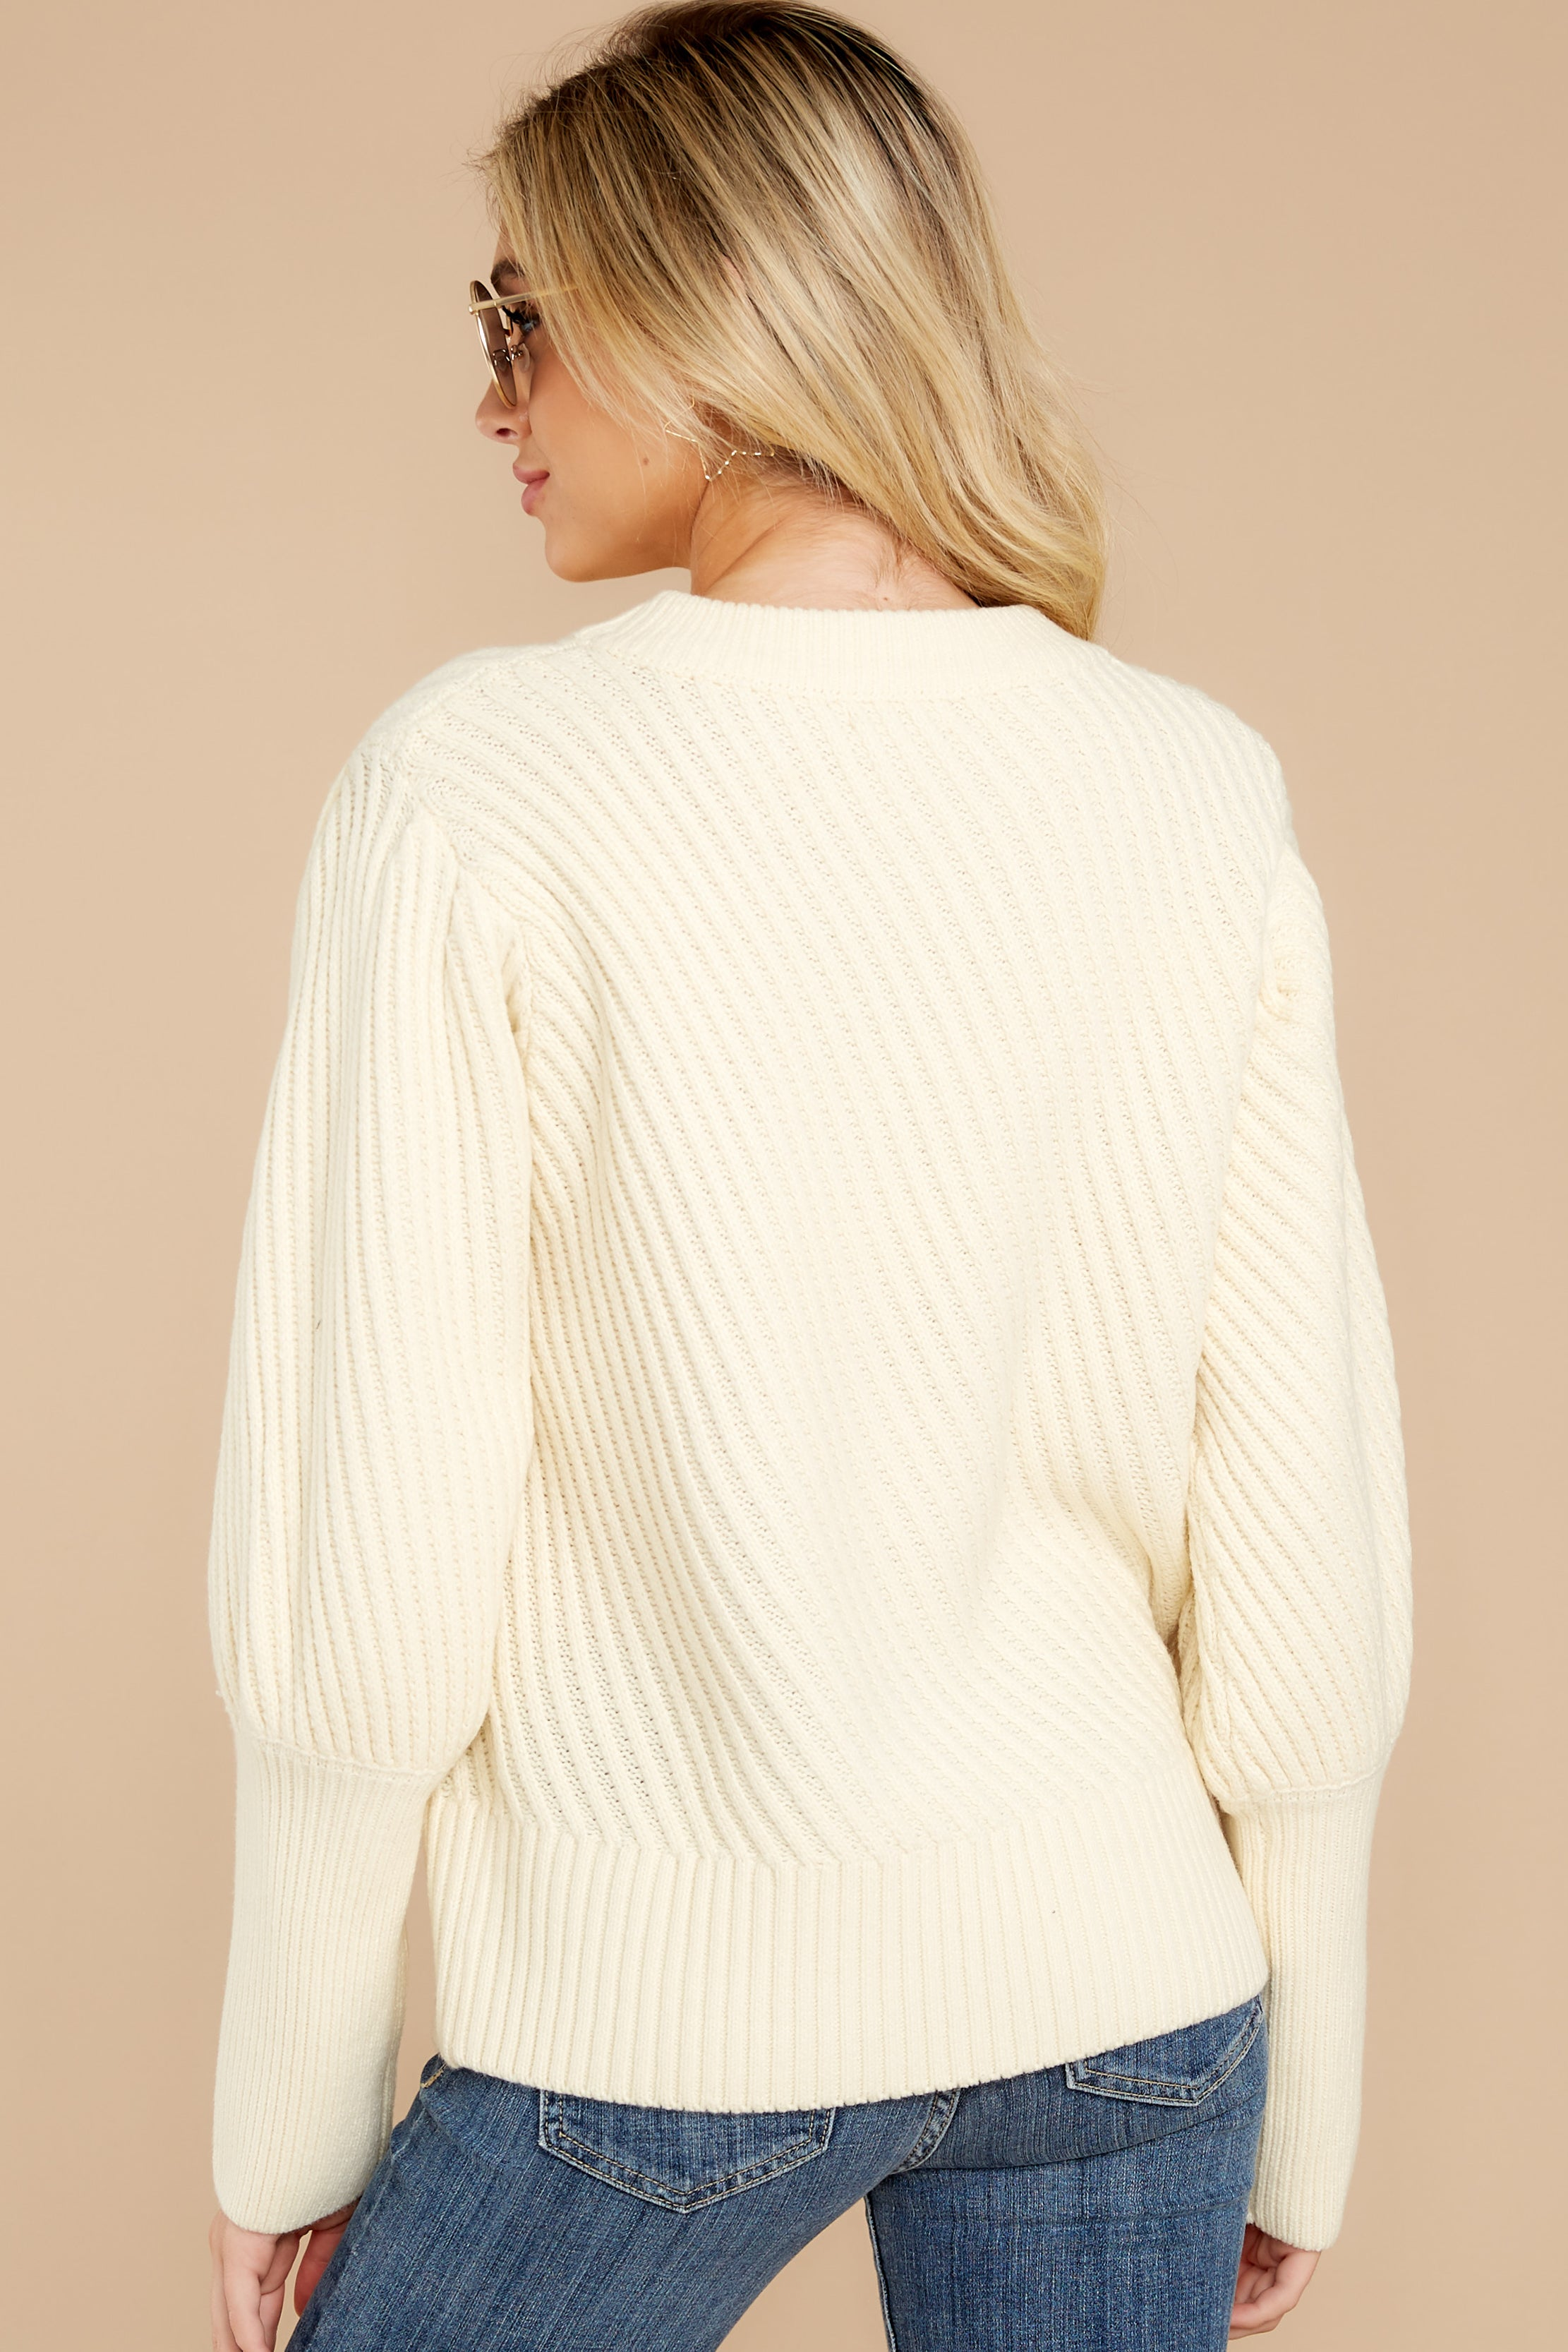 8 My Best Angle Ivory Sweater at reddressboutique.com